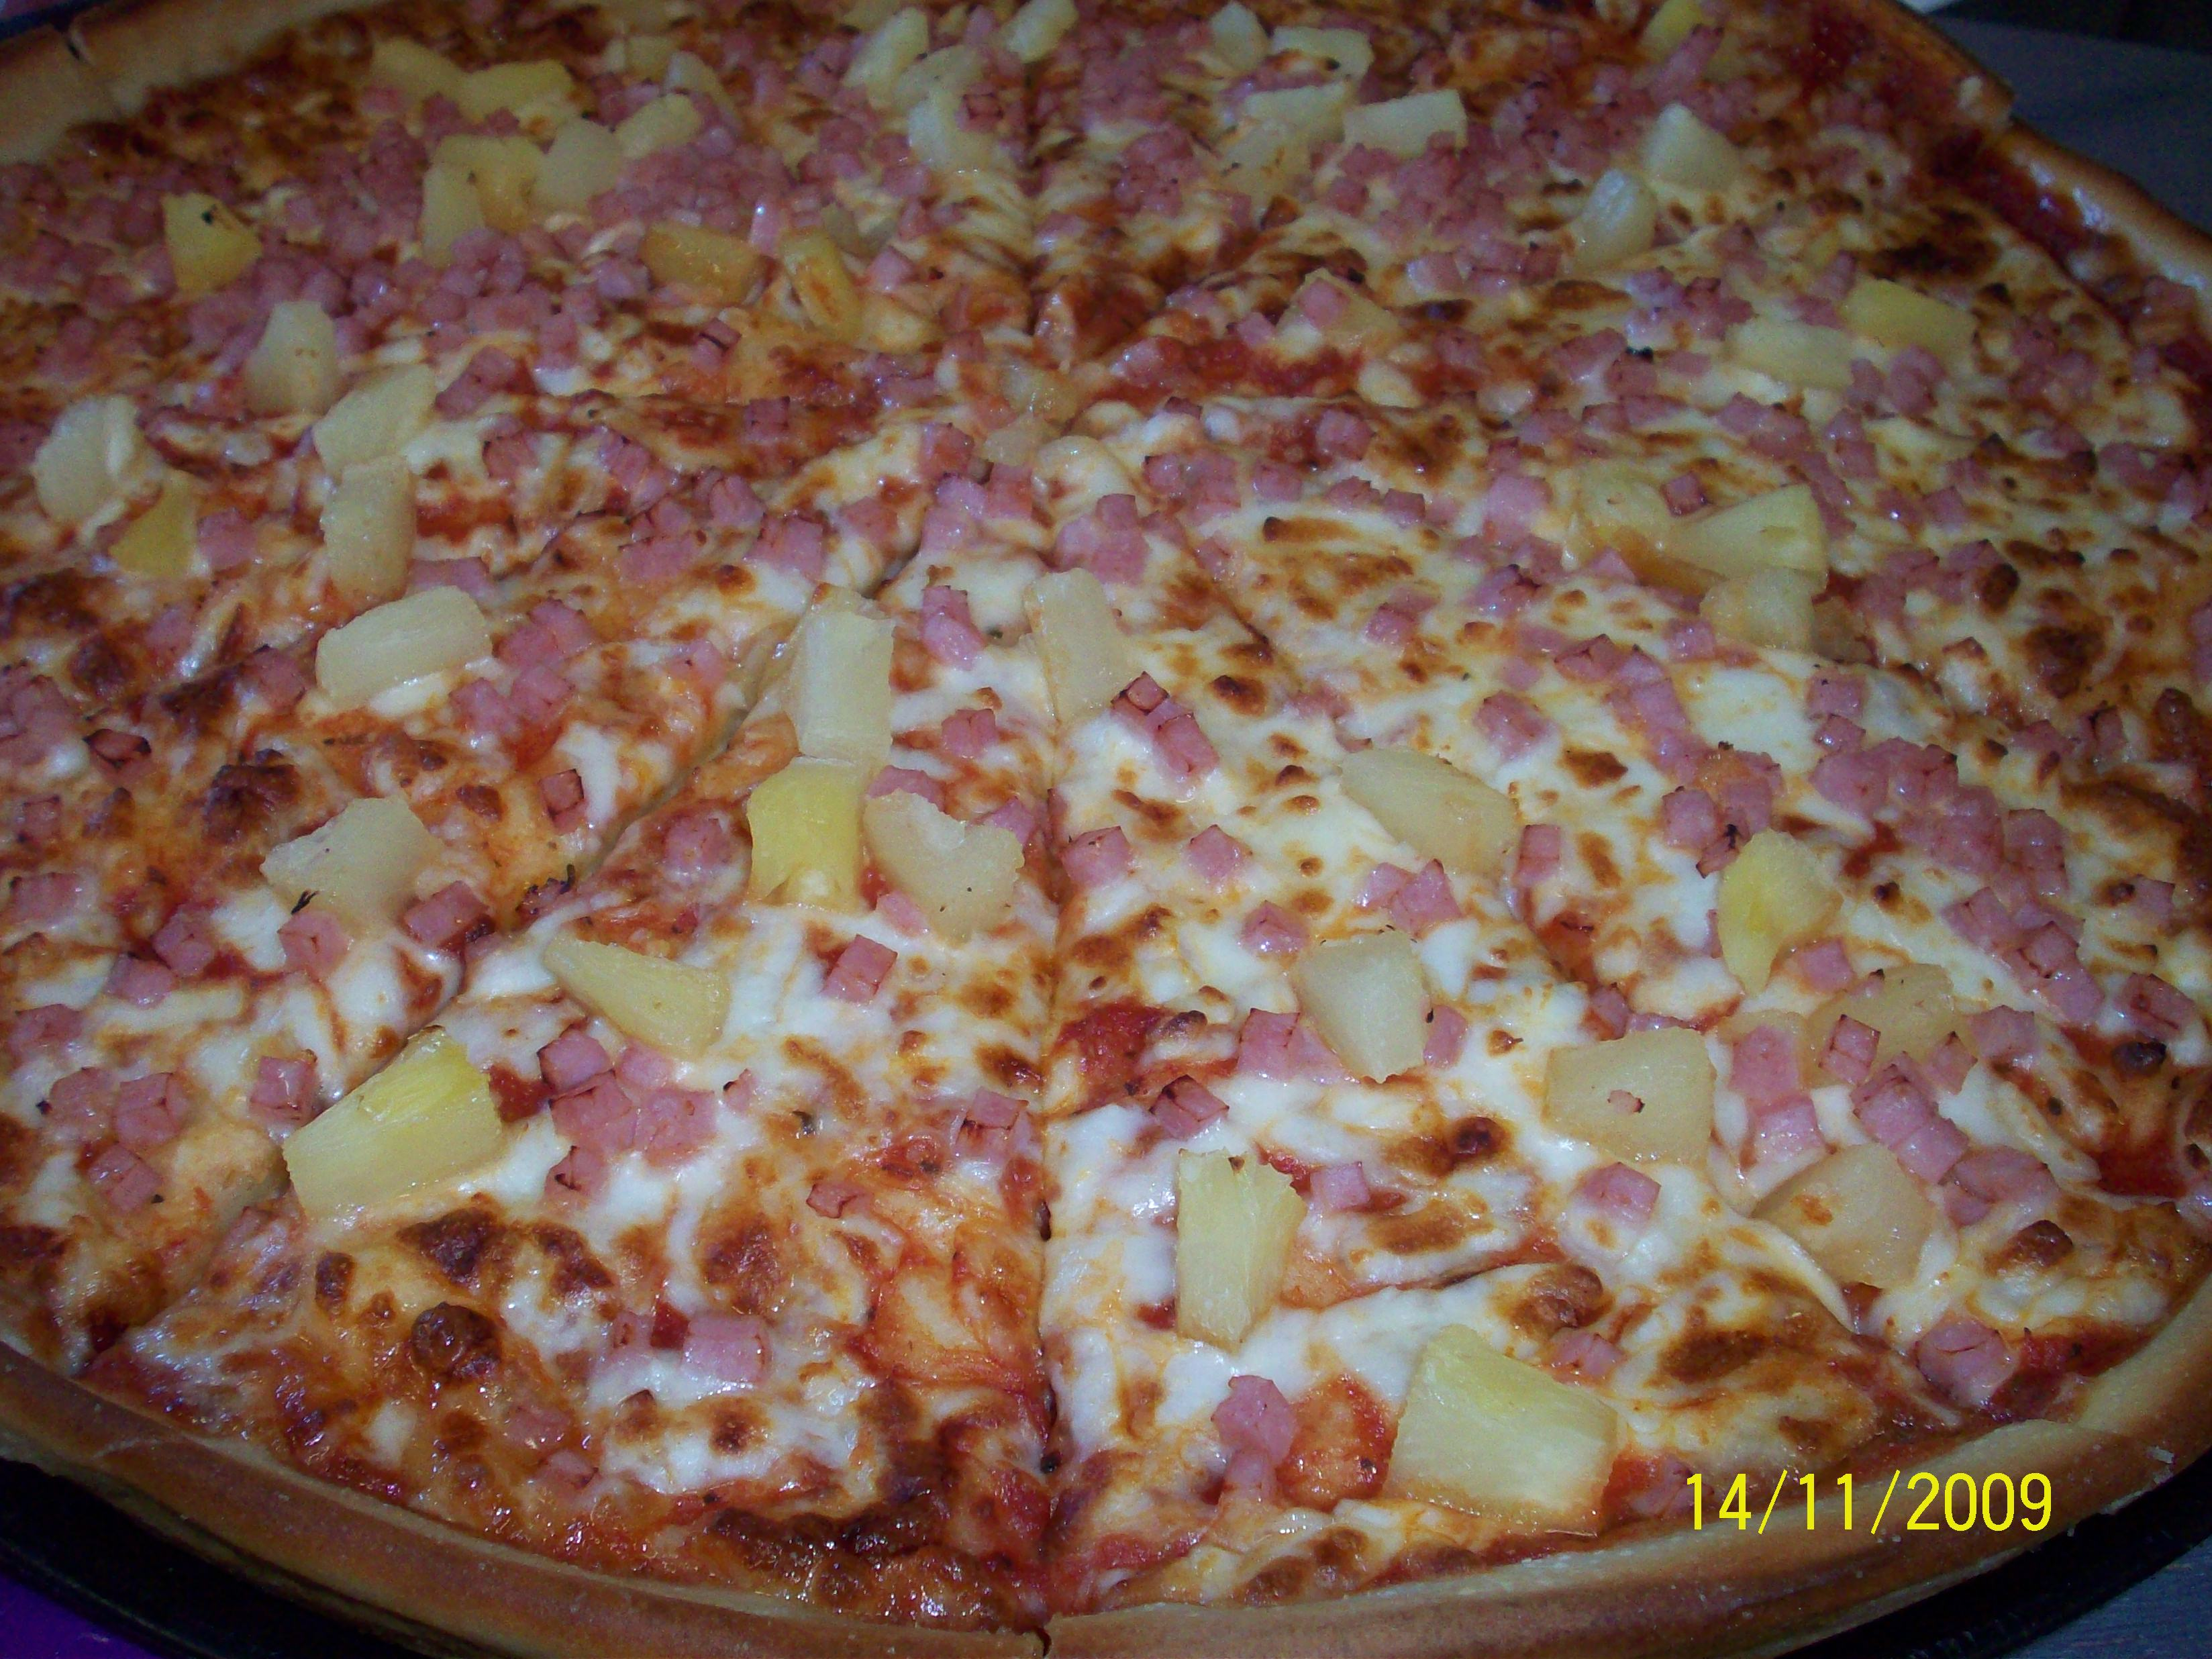 http://foodloader.net/cutie_2009-11-14_Hawaiian_Pizza.jpg